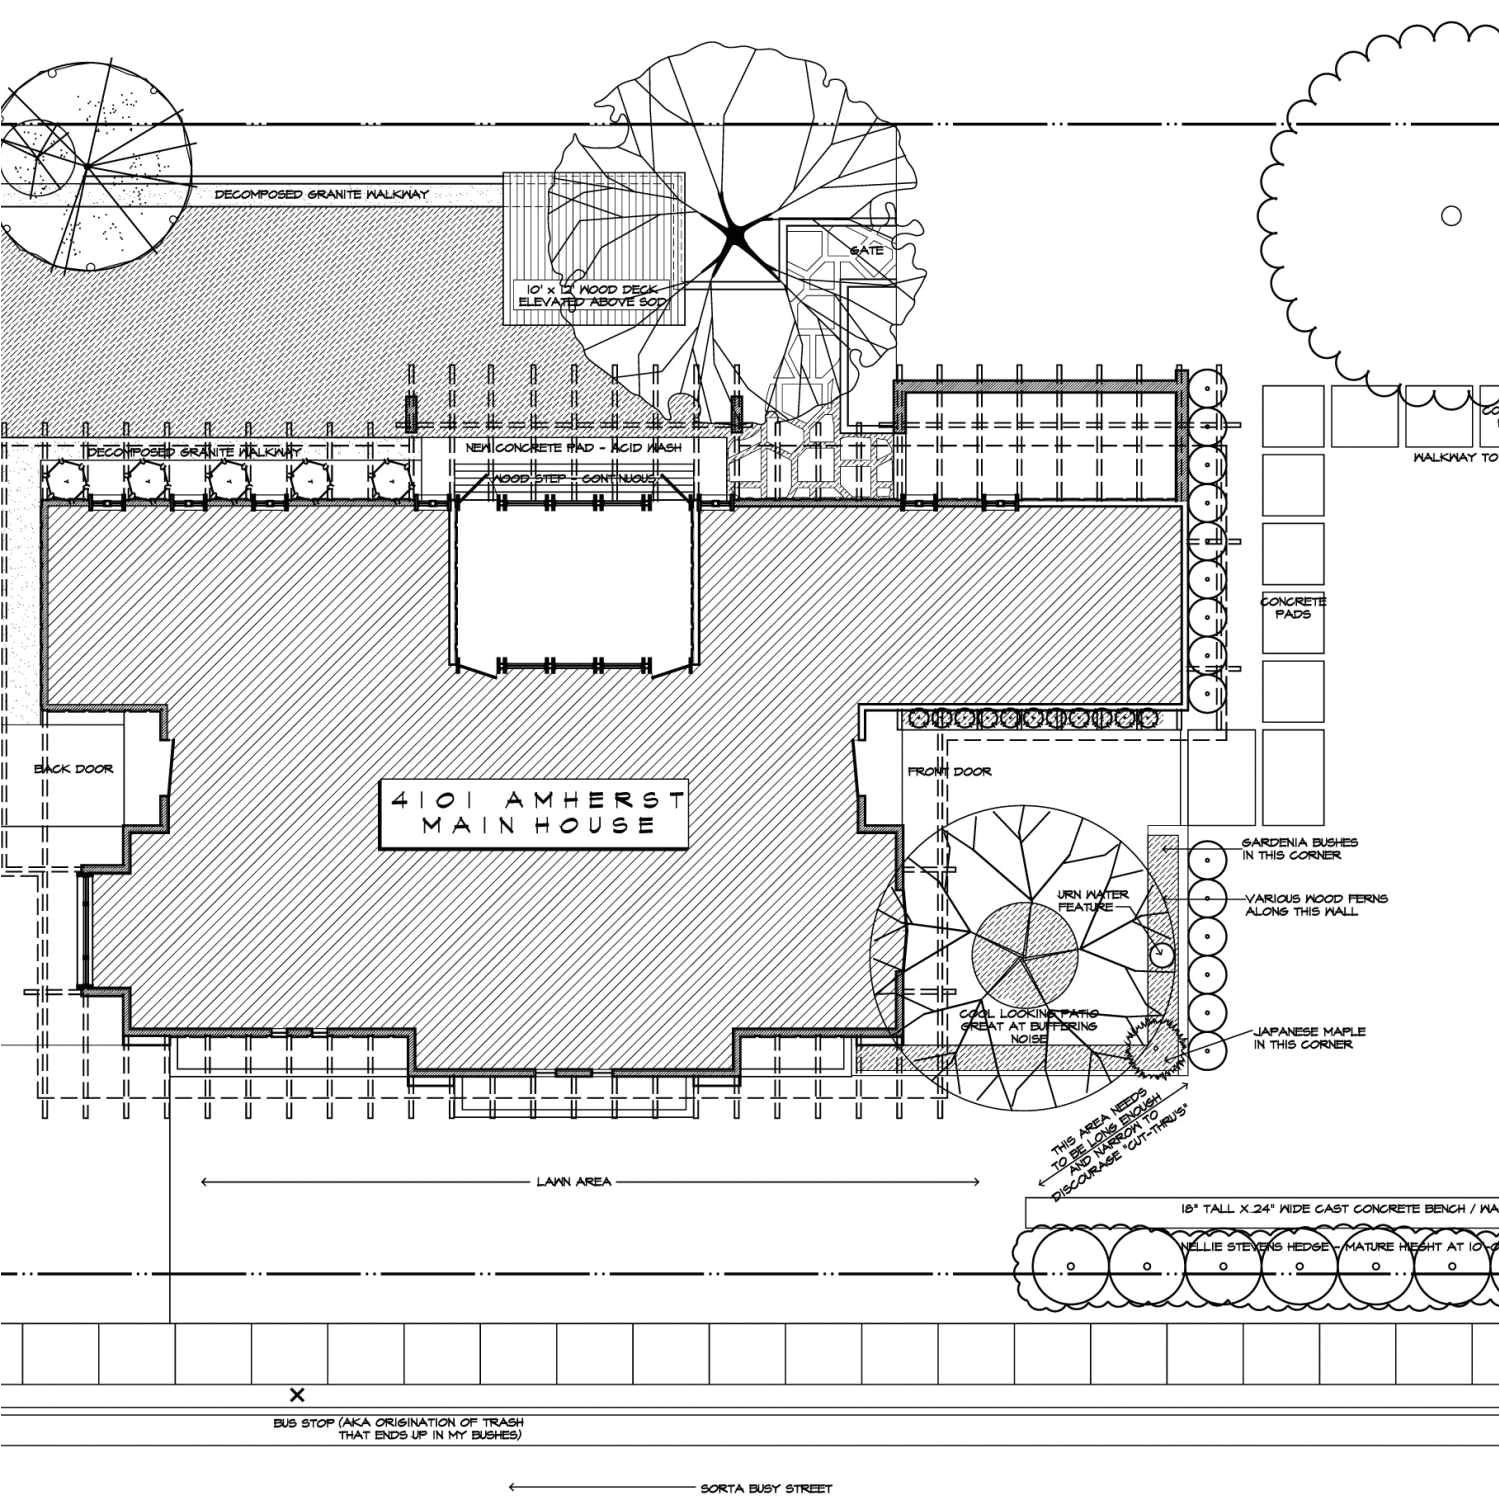 how to draw my own house plans for free